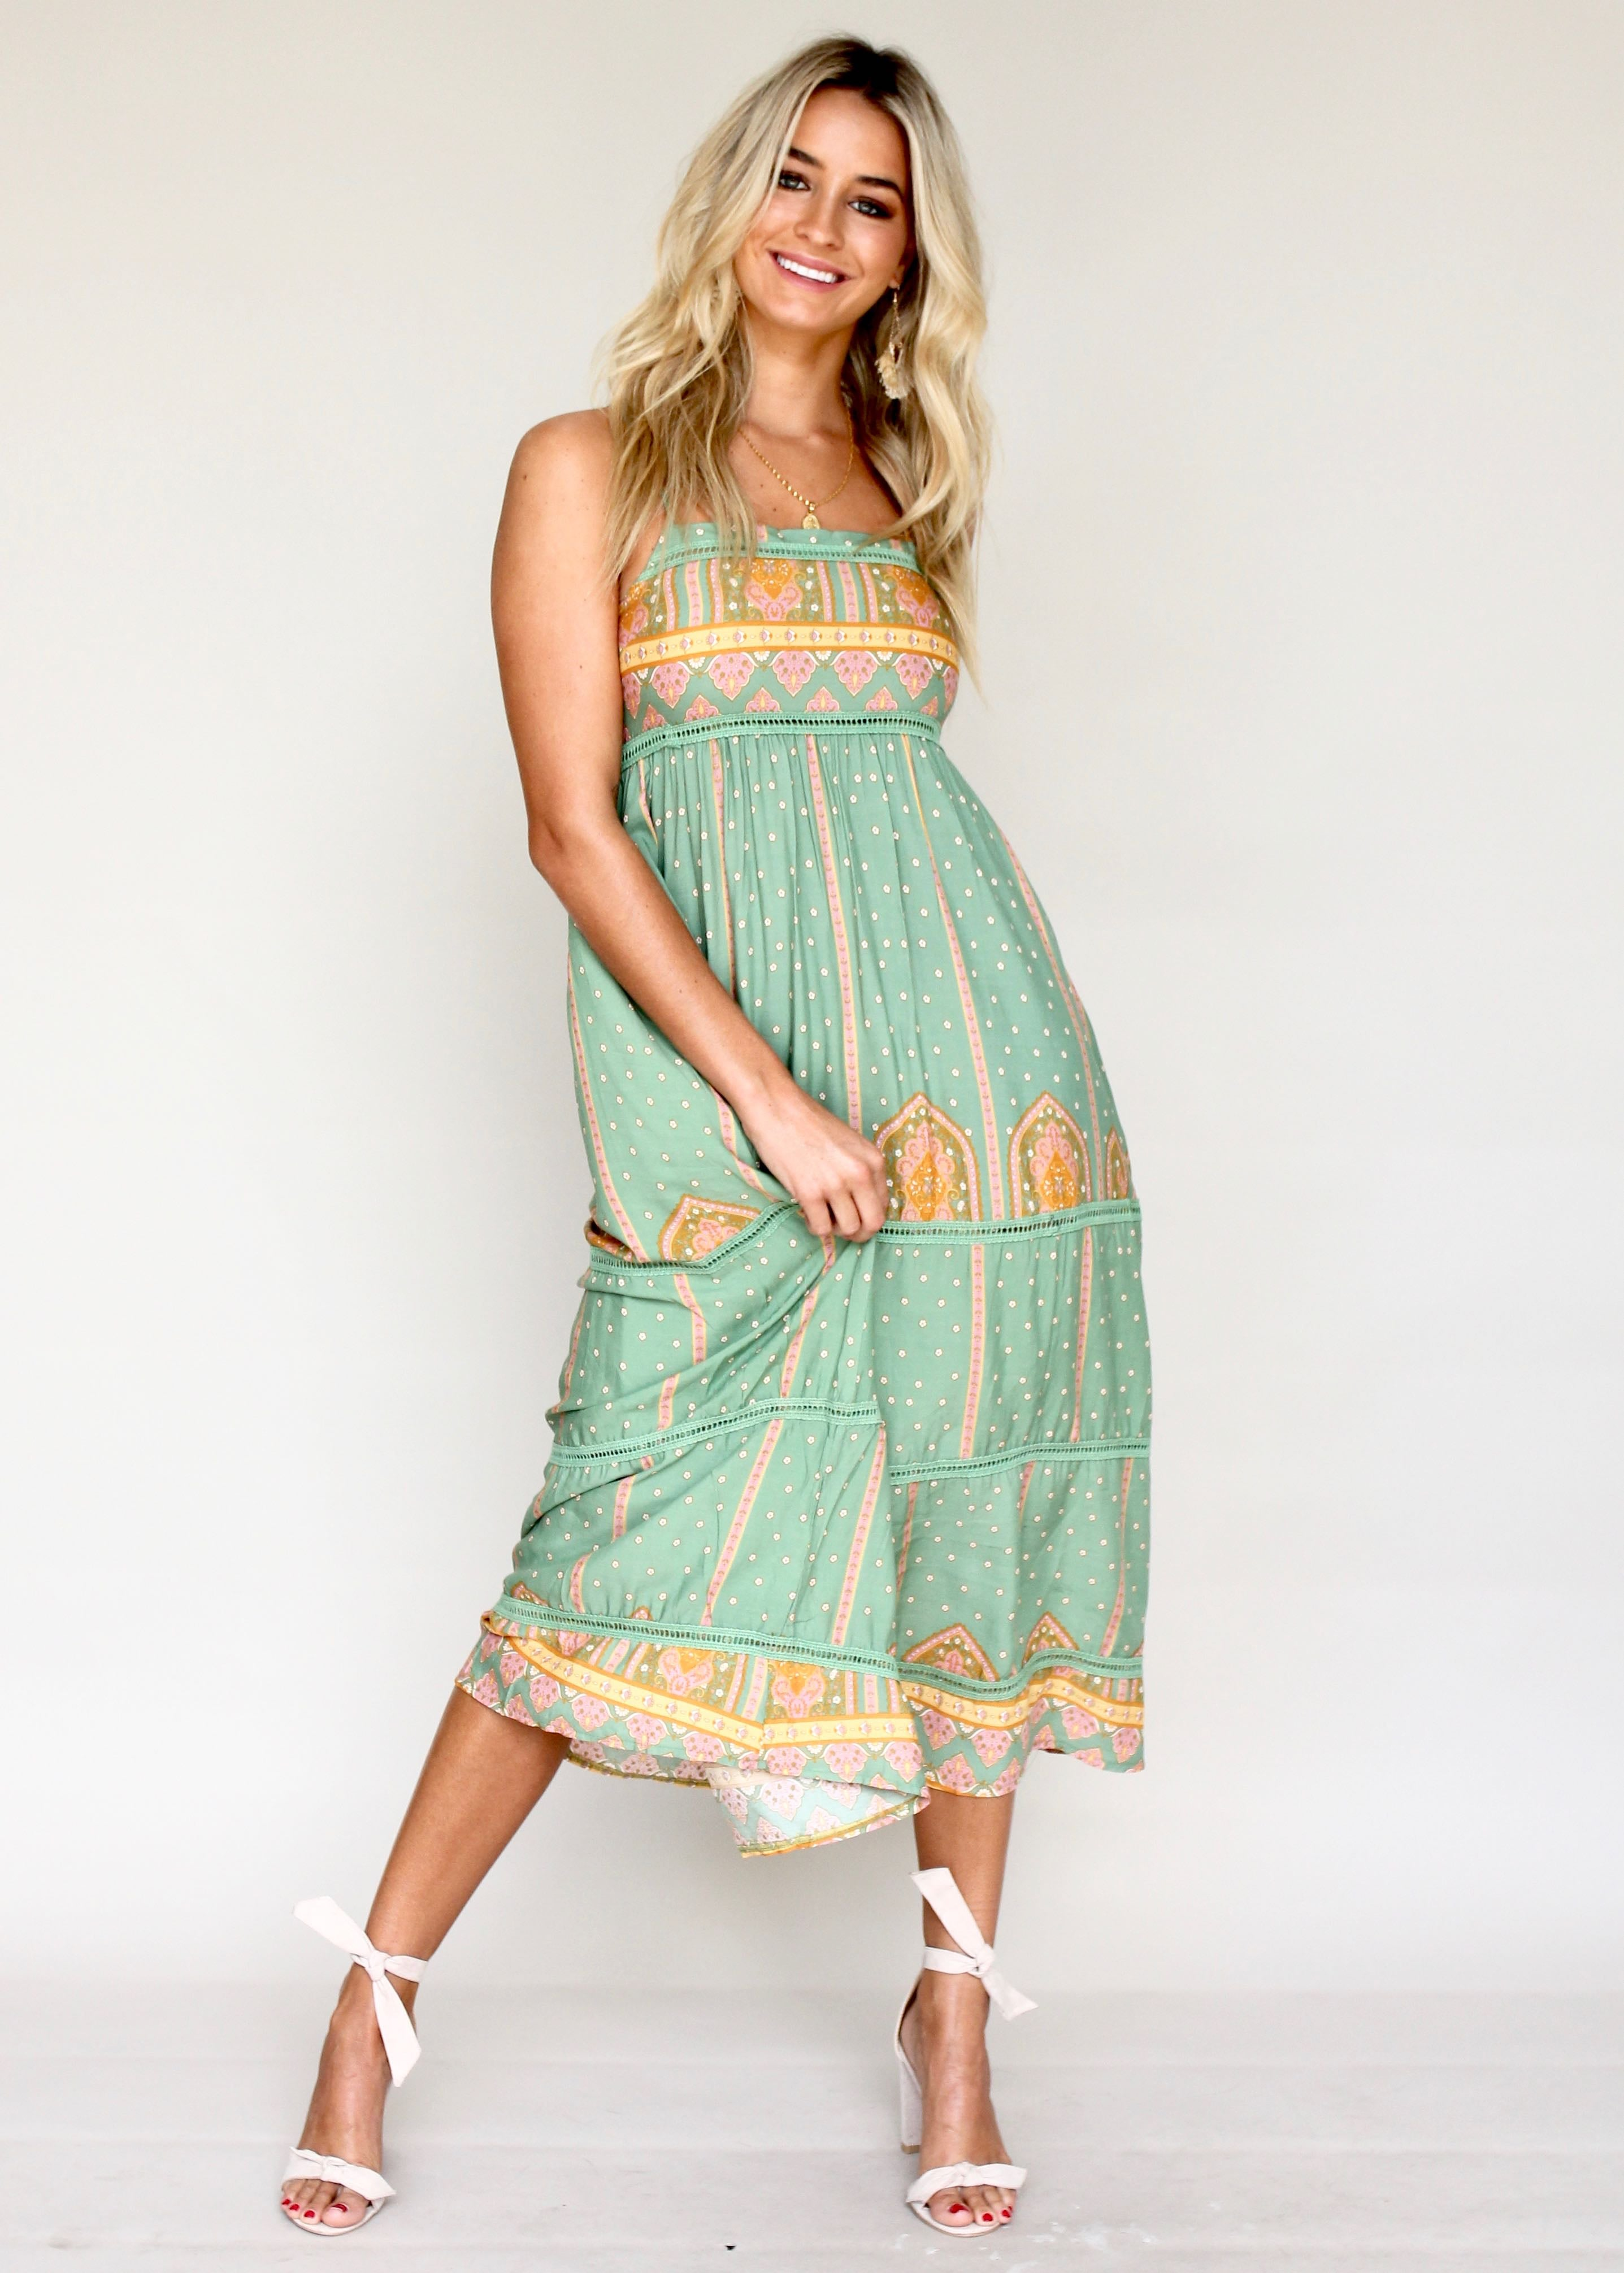 Heidi Swing Dress - Frida